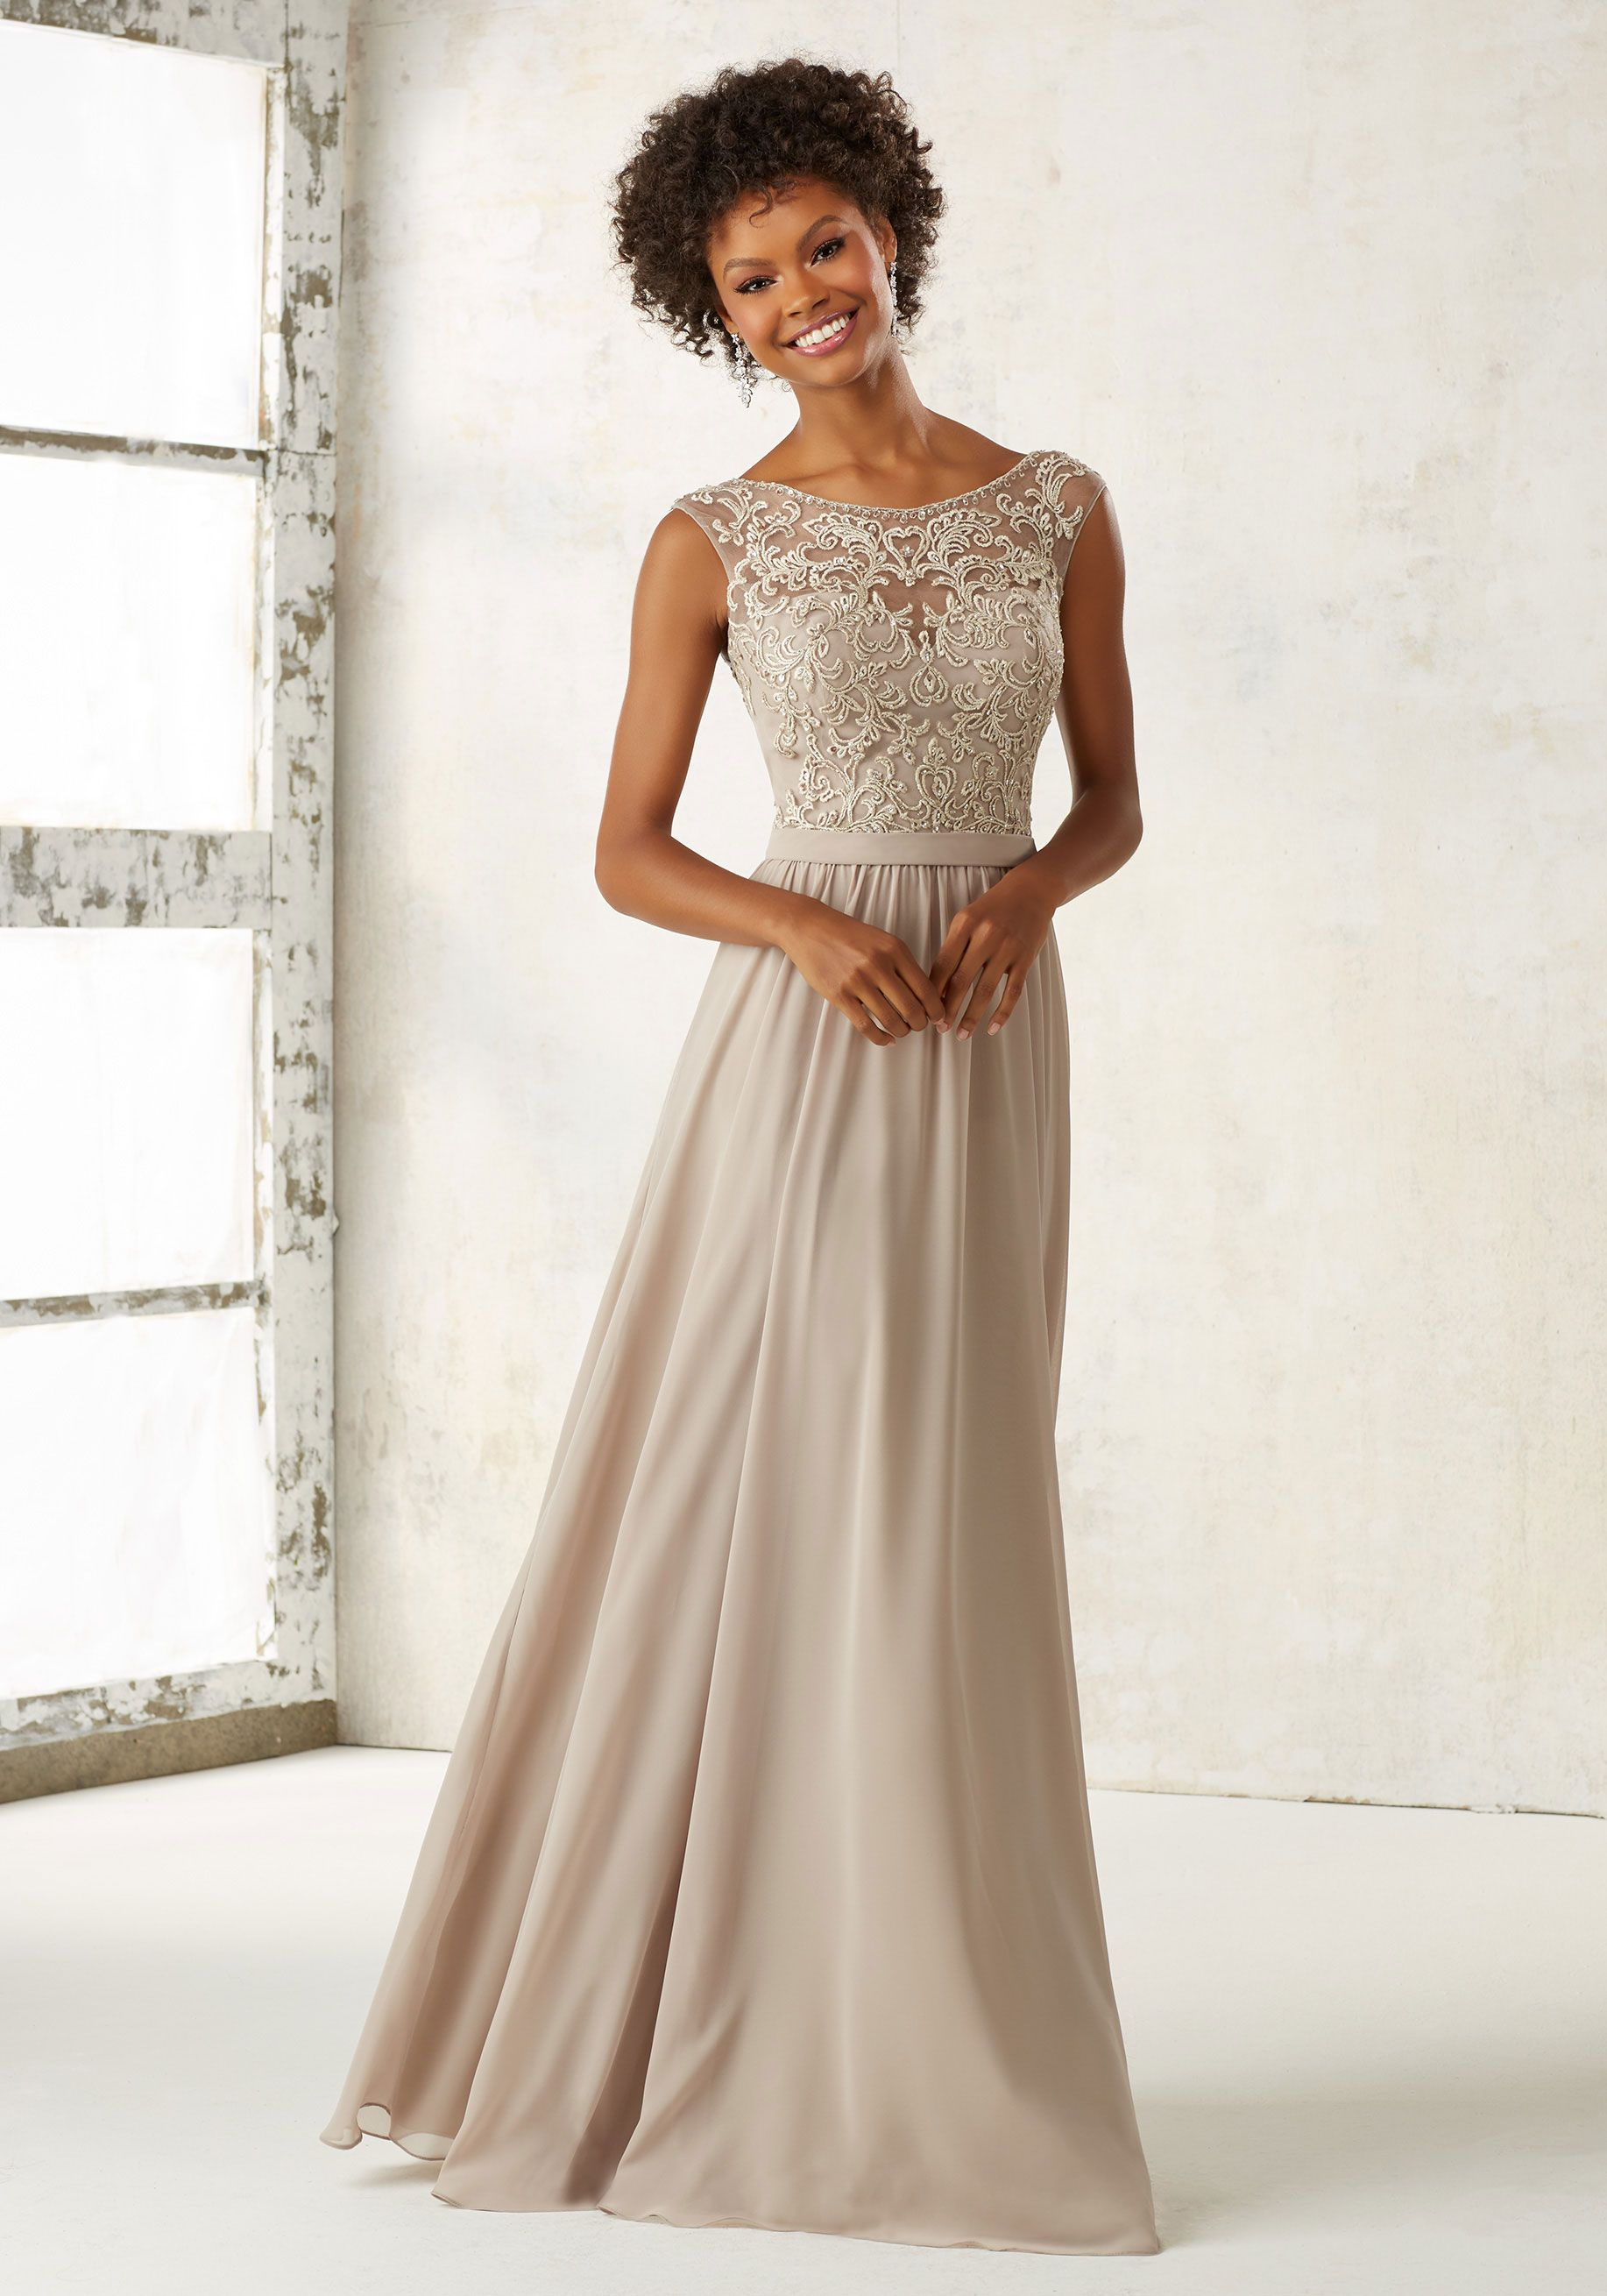 c6e6c4ead0d Chiffon Bridesmaids Dress with Embroidery and Beading on Bodice ...